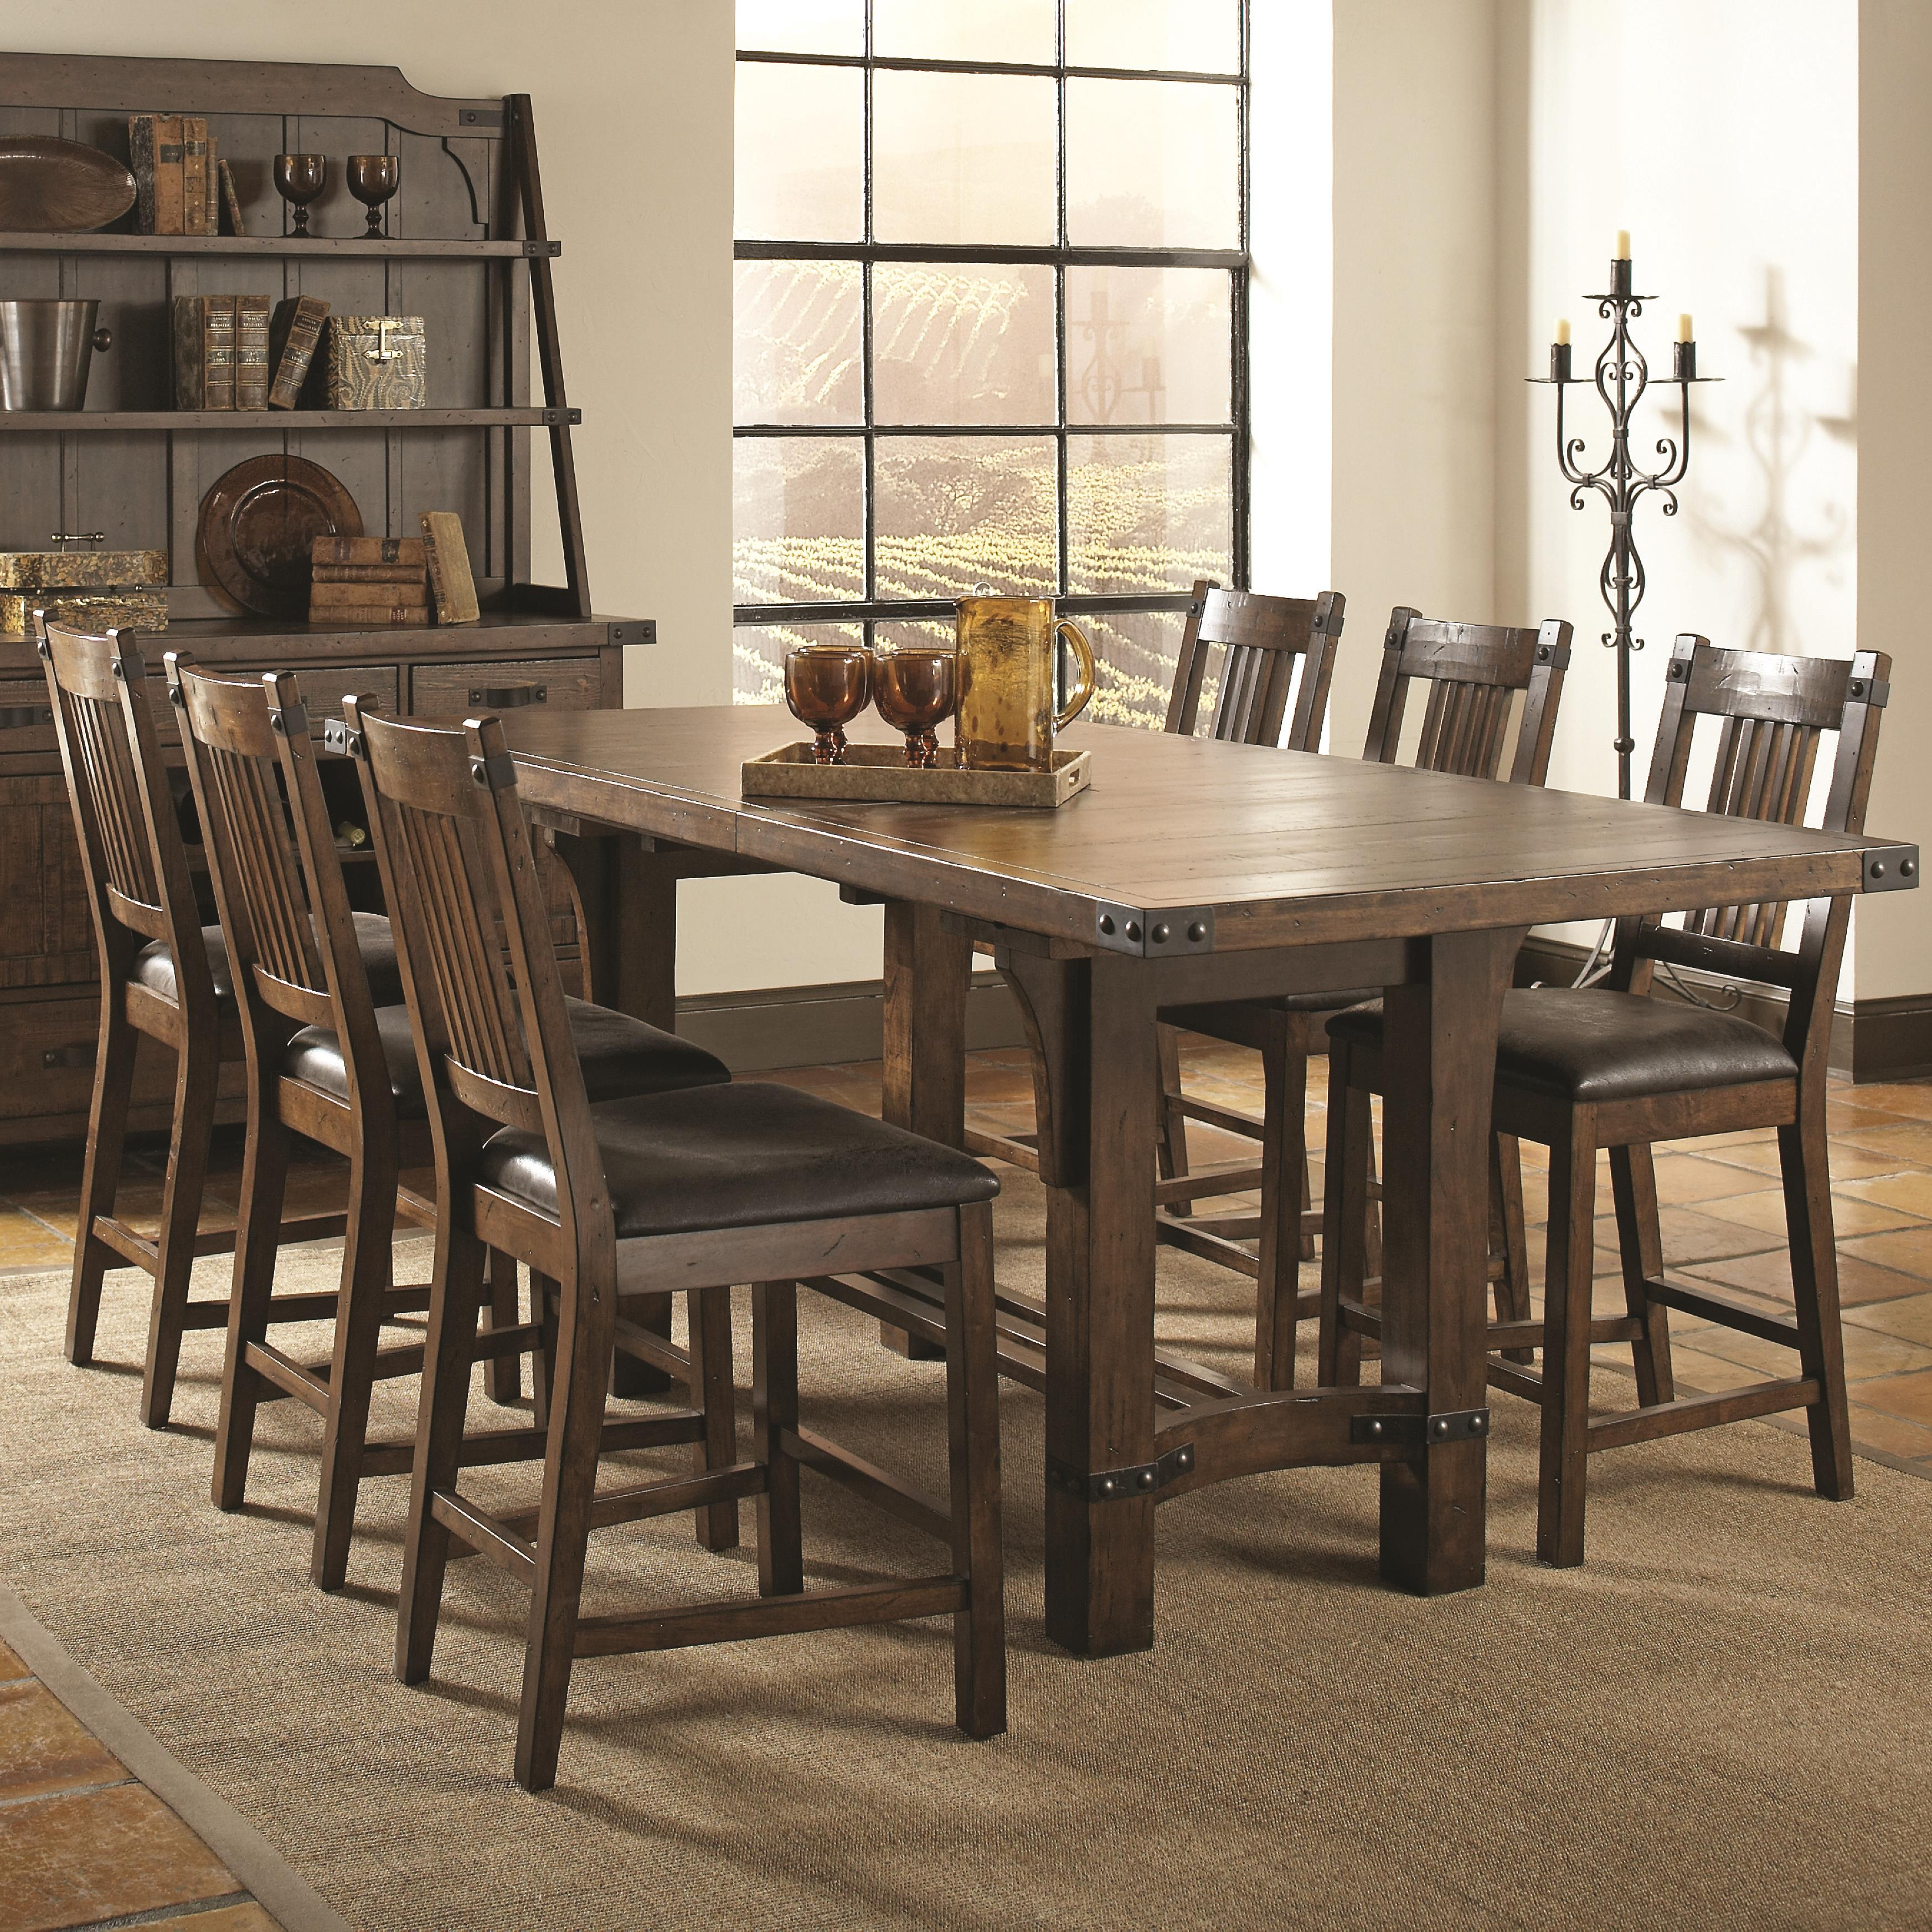 Coaster Padima 7 Pc Counter Height Dining Set - Item Number: 105708+6X105709